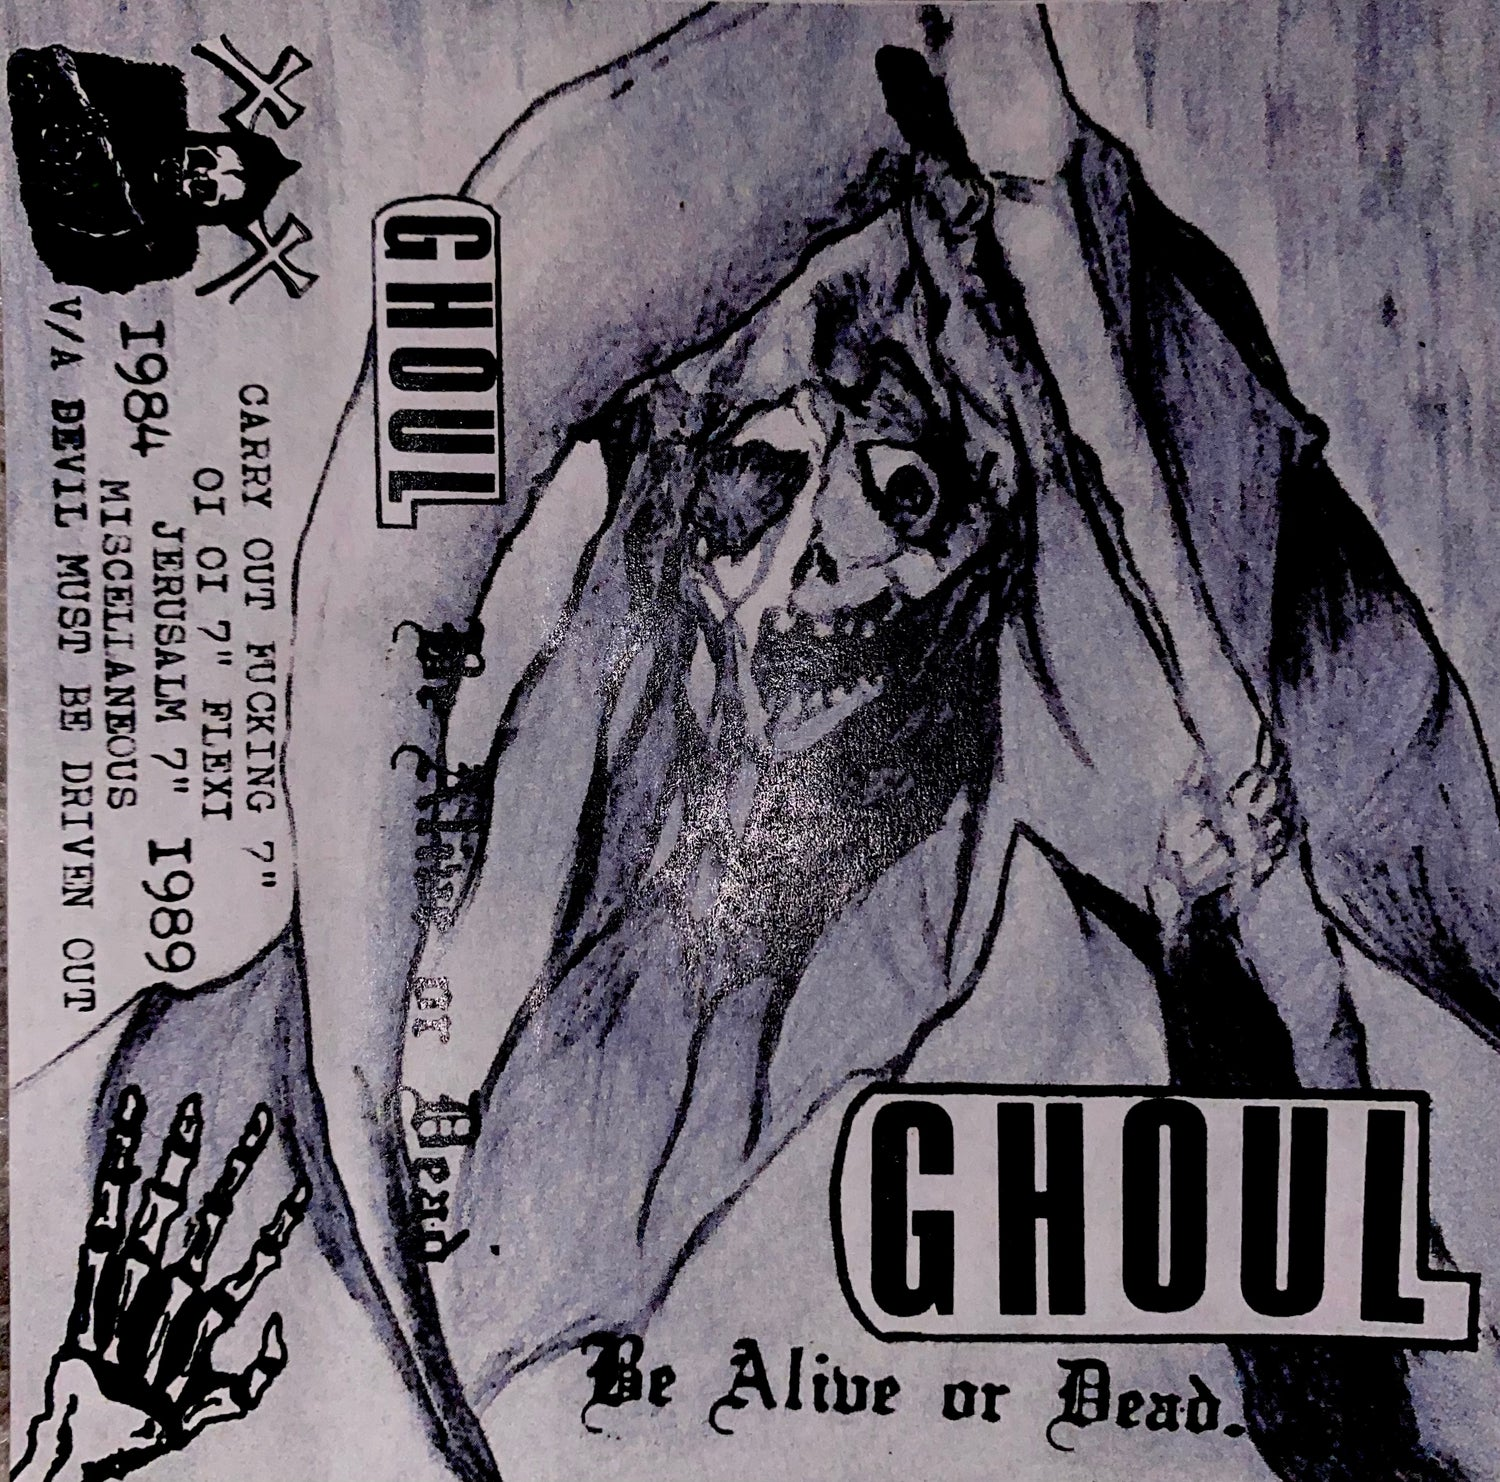 GHOUL-BE ALIVE OR DEAD CS